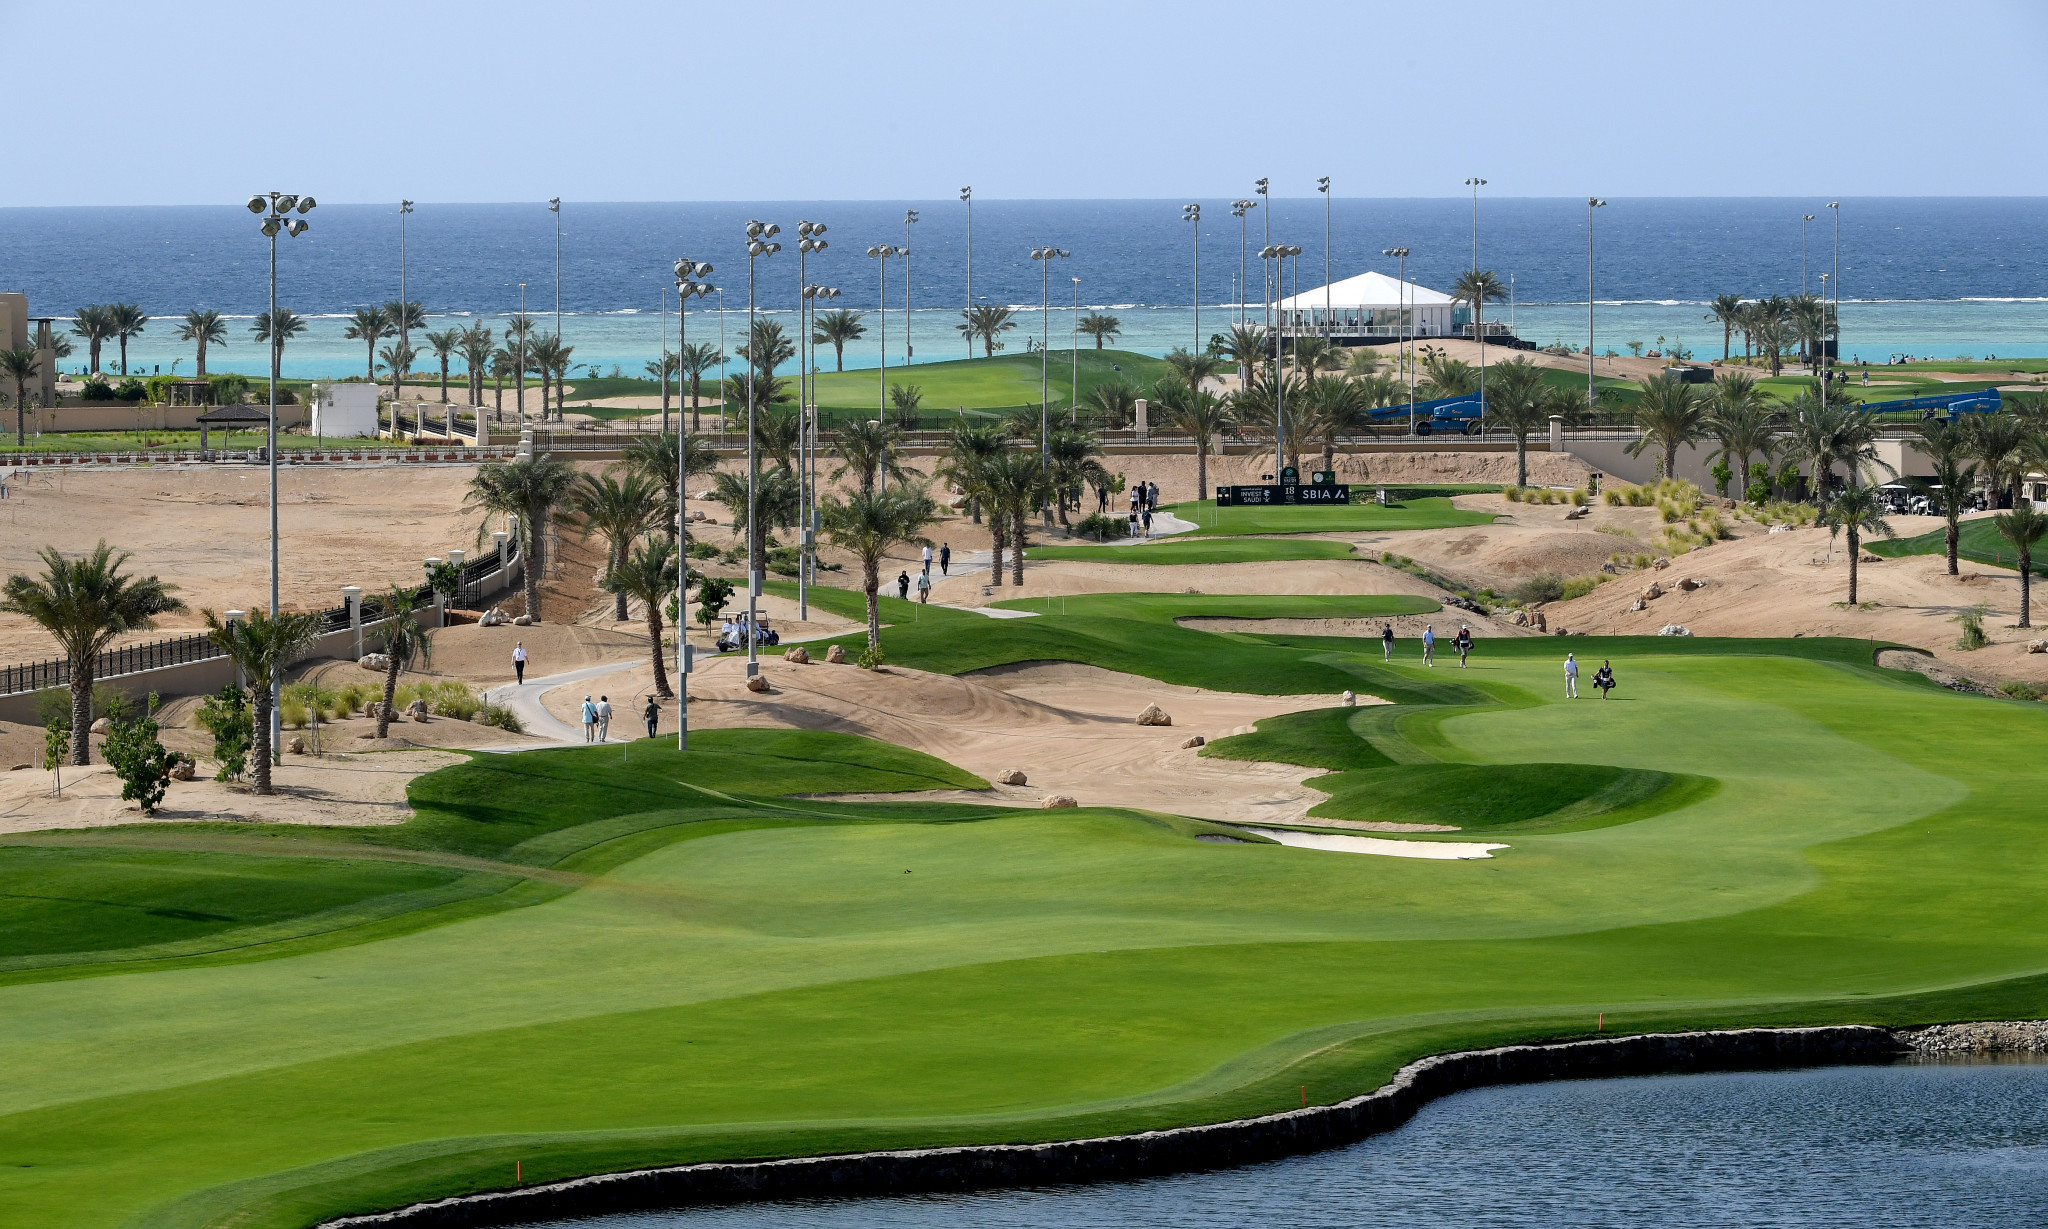 Another women's golf event is planned for the Royal Greens Golf and Country Club in Saudi Arabia ©Getty Images